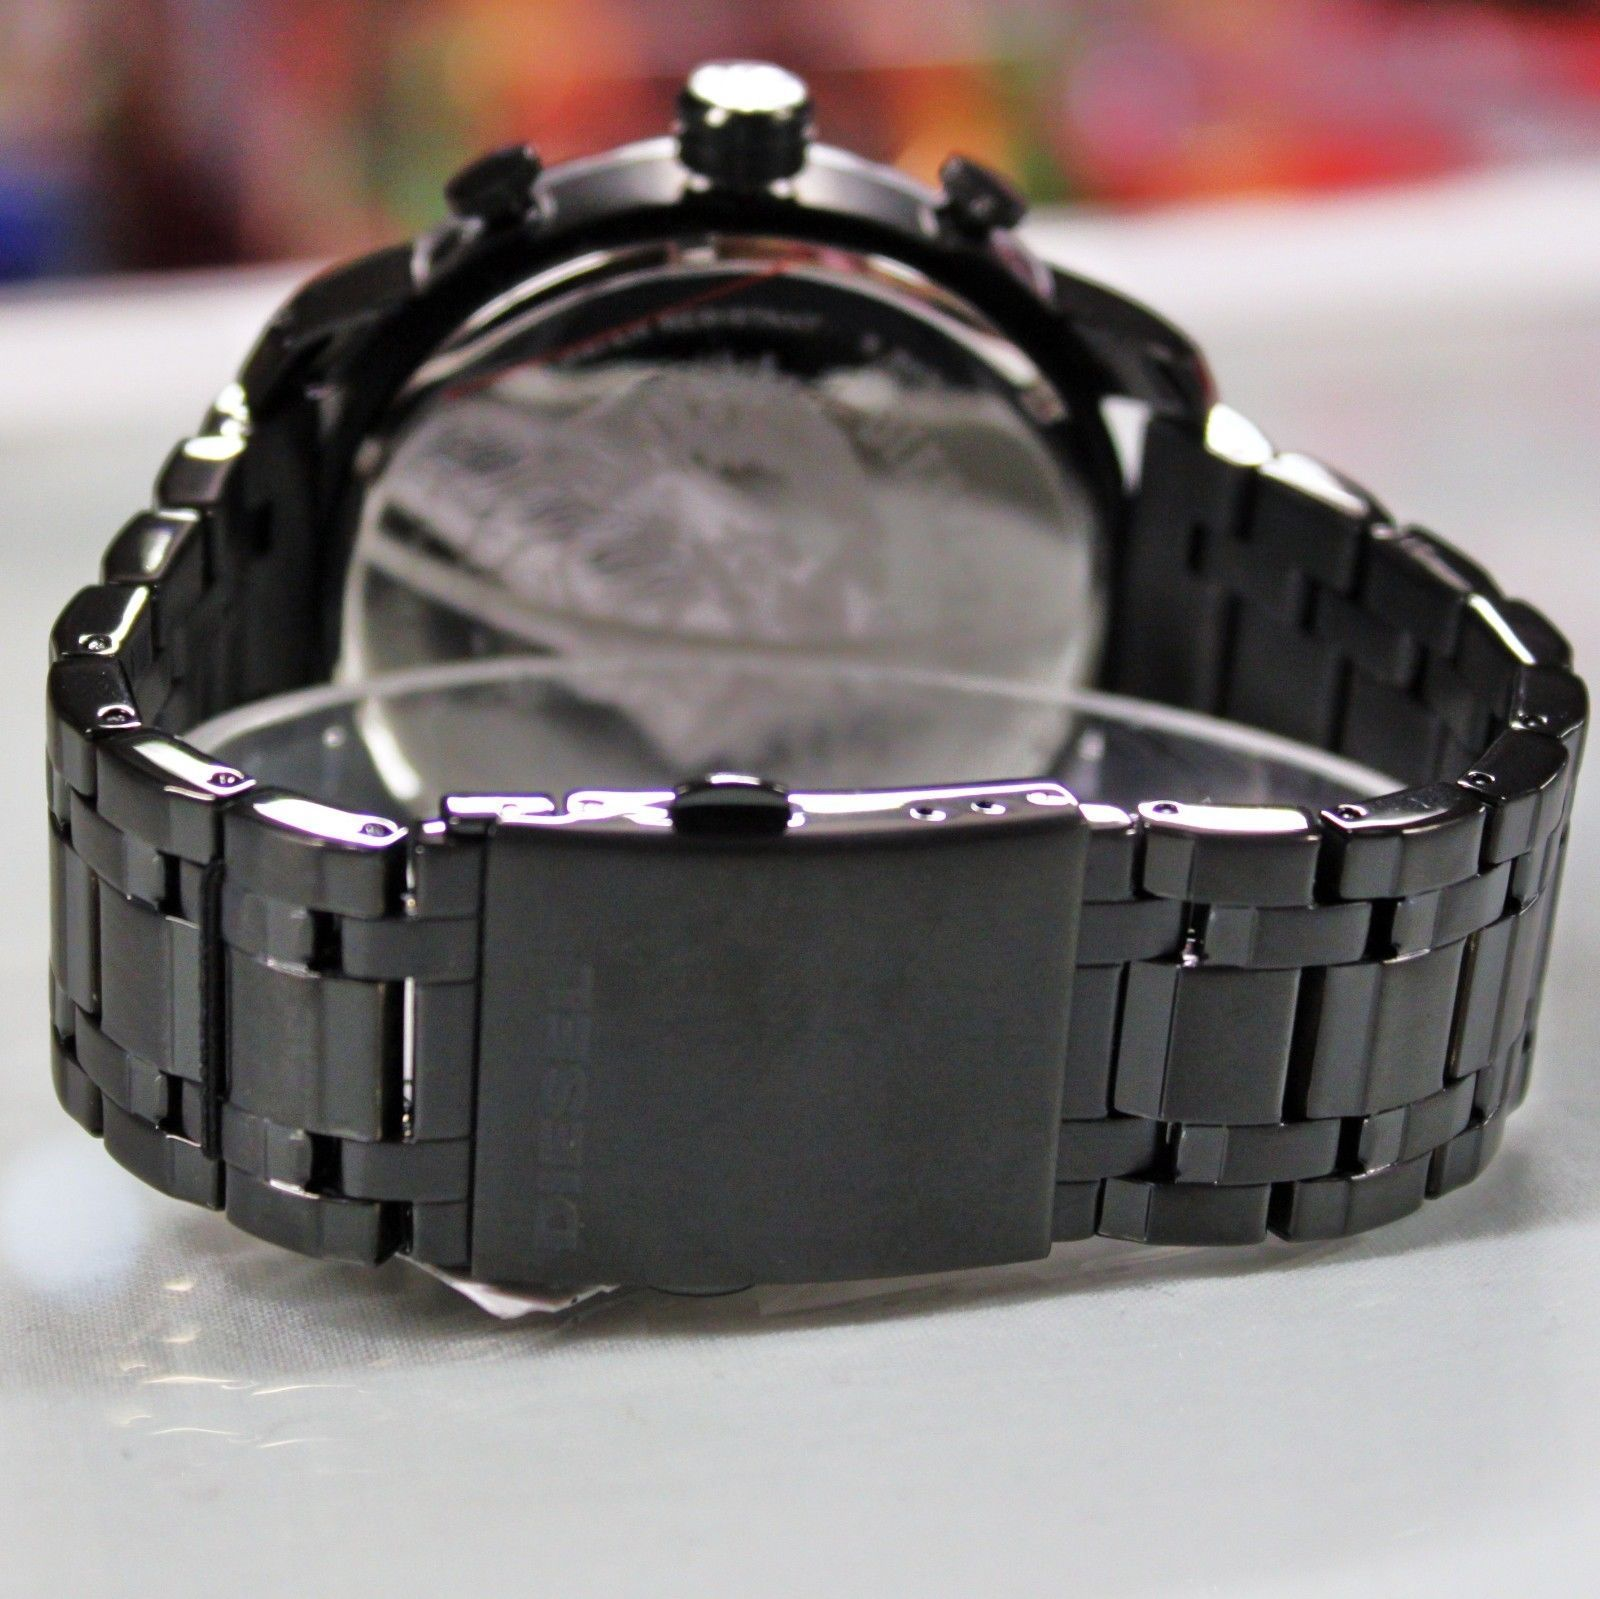 New Diesel DZ4349 Chronograph Stronghold Black Stainless Steel Watch for Men